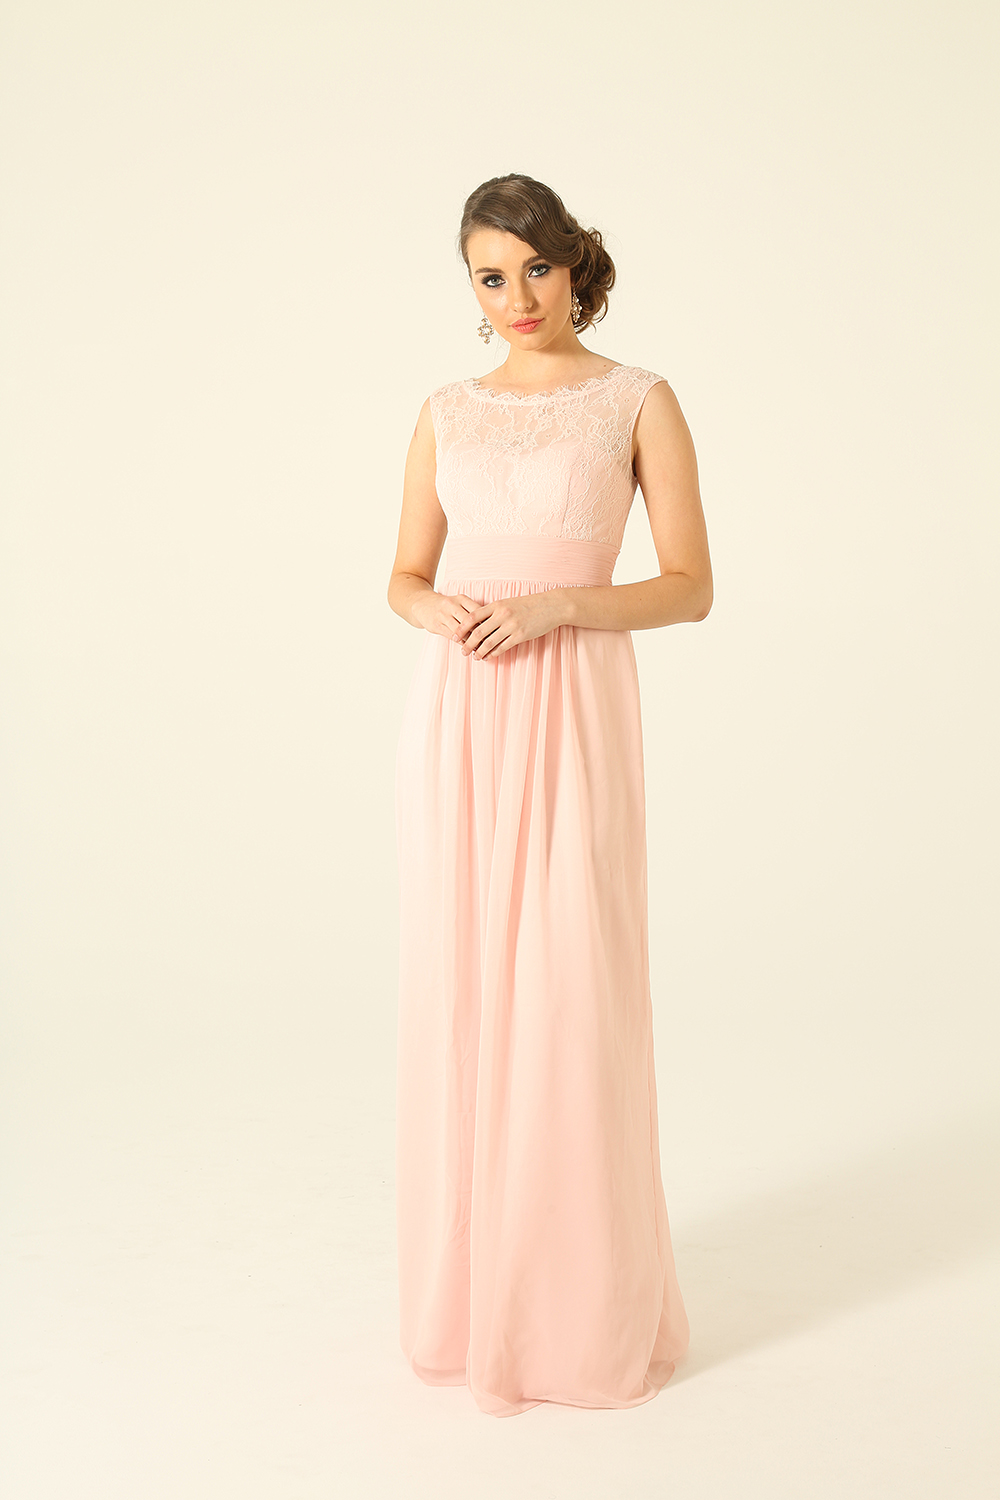 PO34 Charlotte Bridesmaids Dress - end of dye lot pink